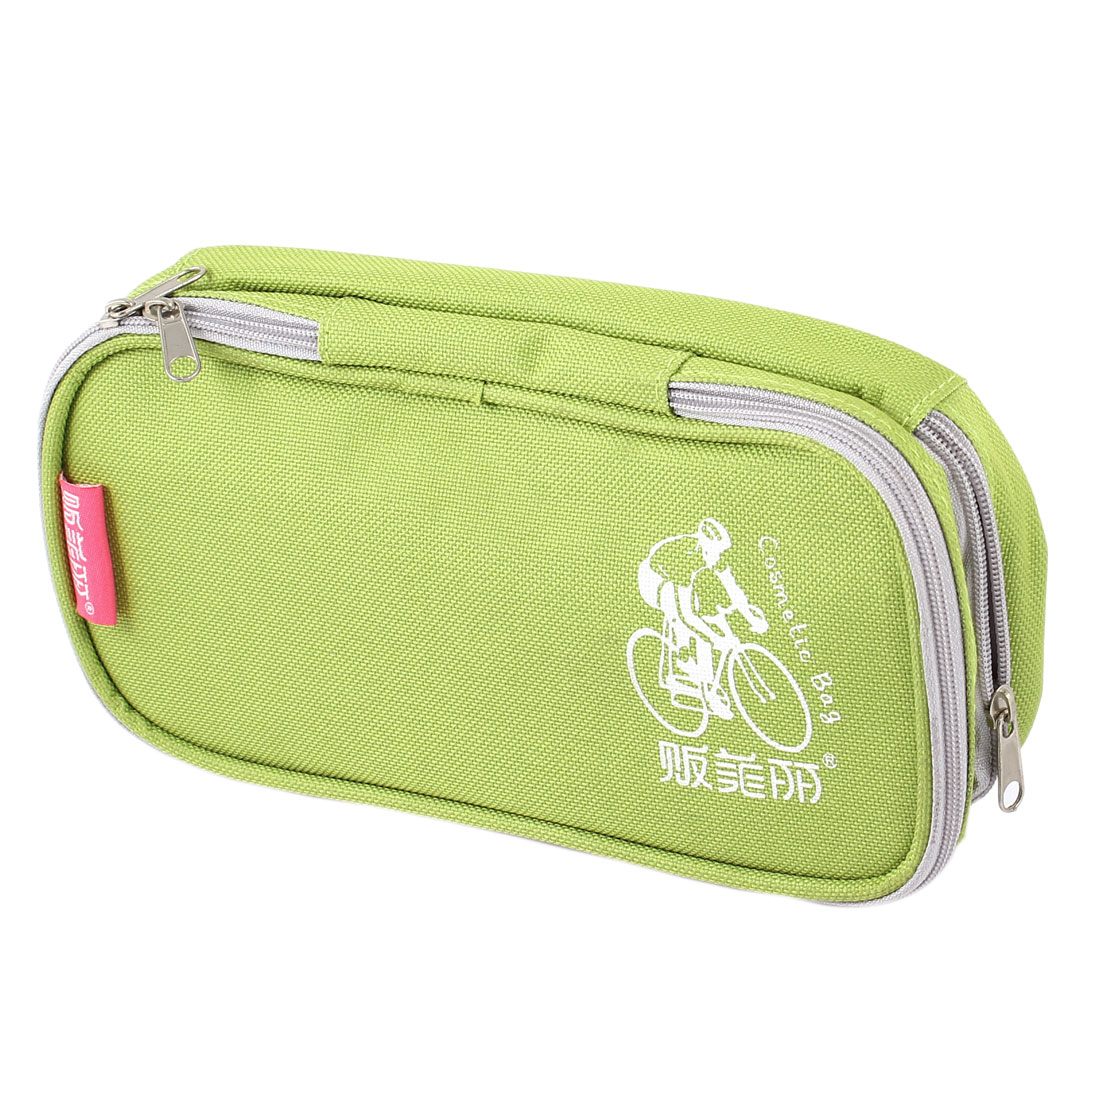 Yellow Green Travel Portable Zip Up Handbag Toiletry Makeup Holder Cosmetic Bag Purse Organizer for Lady